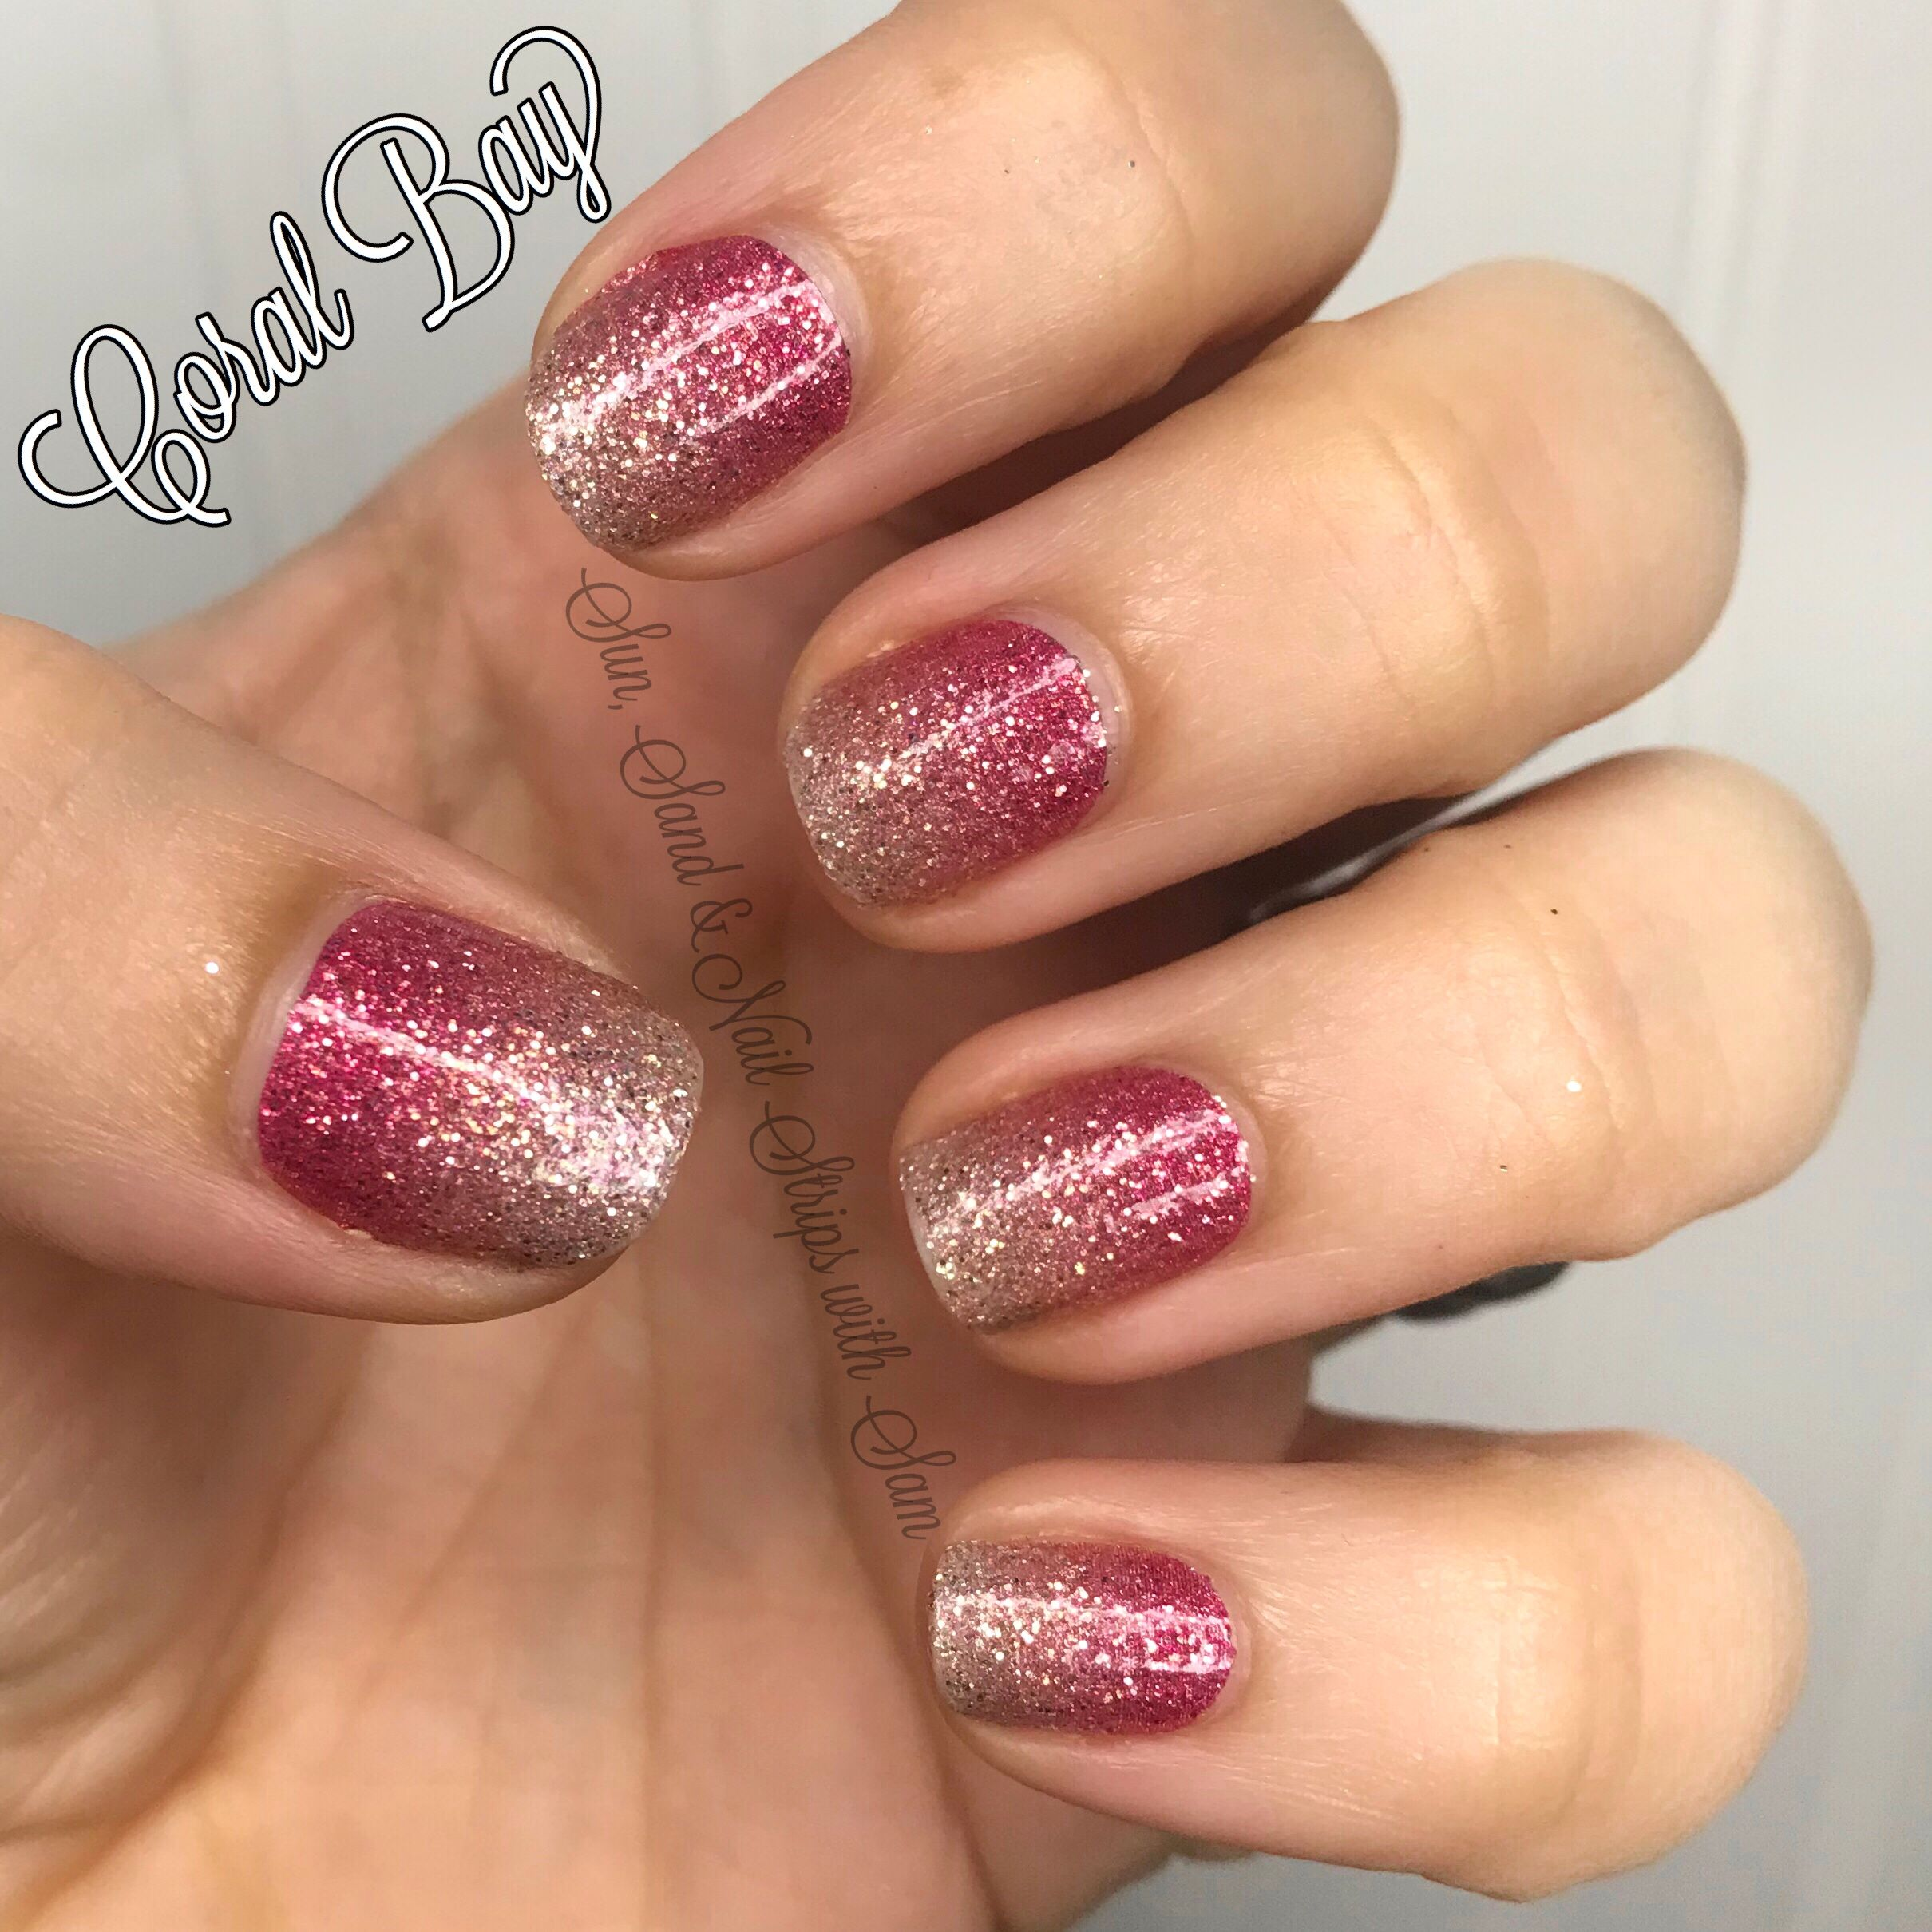 Coral Bay By Color Street Pink And Gold Glitter Gradient Gorgeousness 100 Nail Polish Strips Easy And Q Nagel Farbenfrohe Nageldesigns Winter Nagel Farben